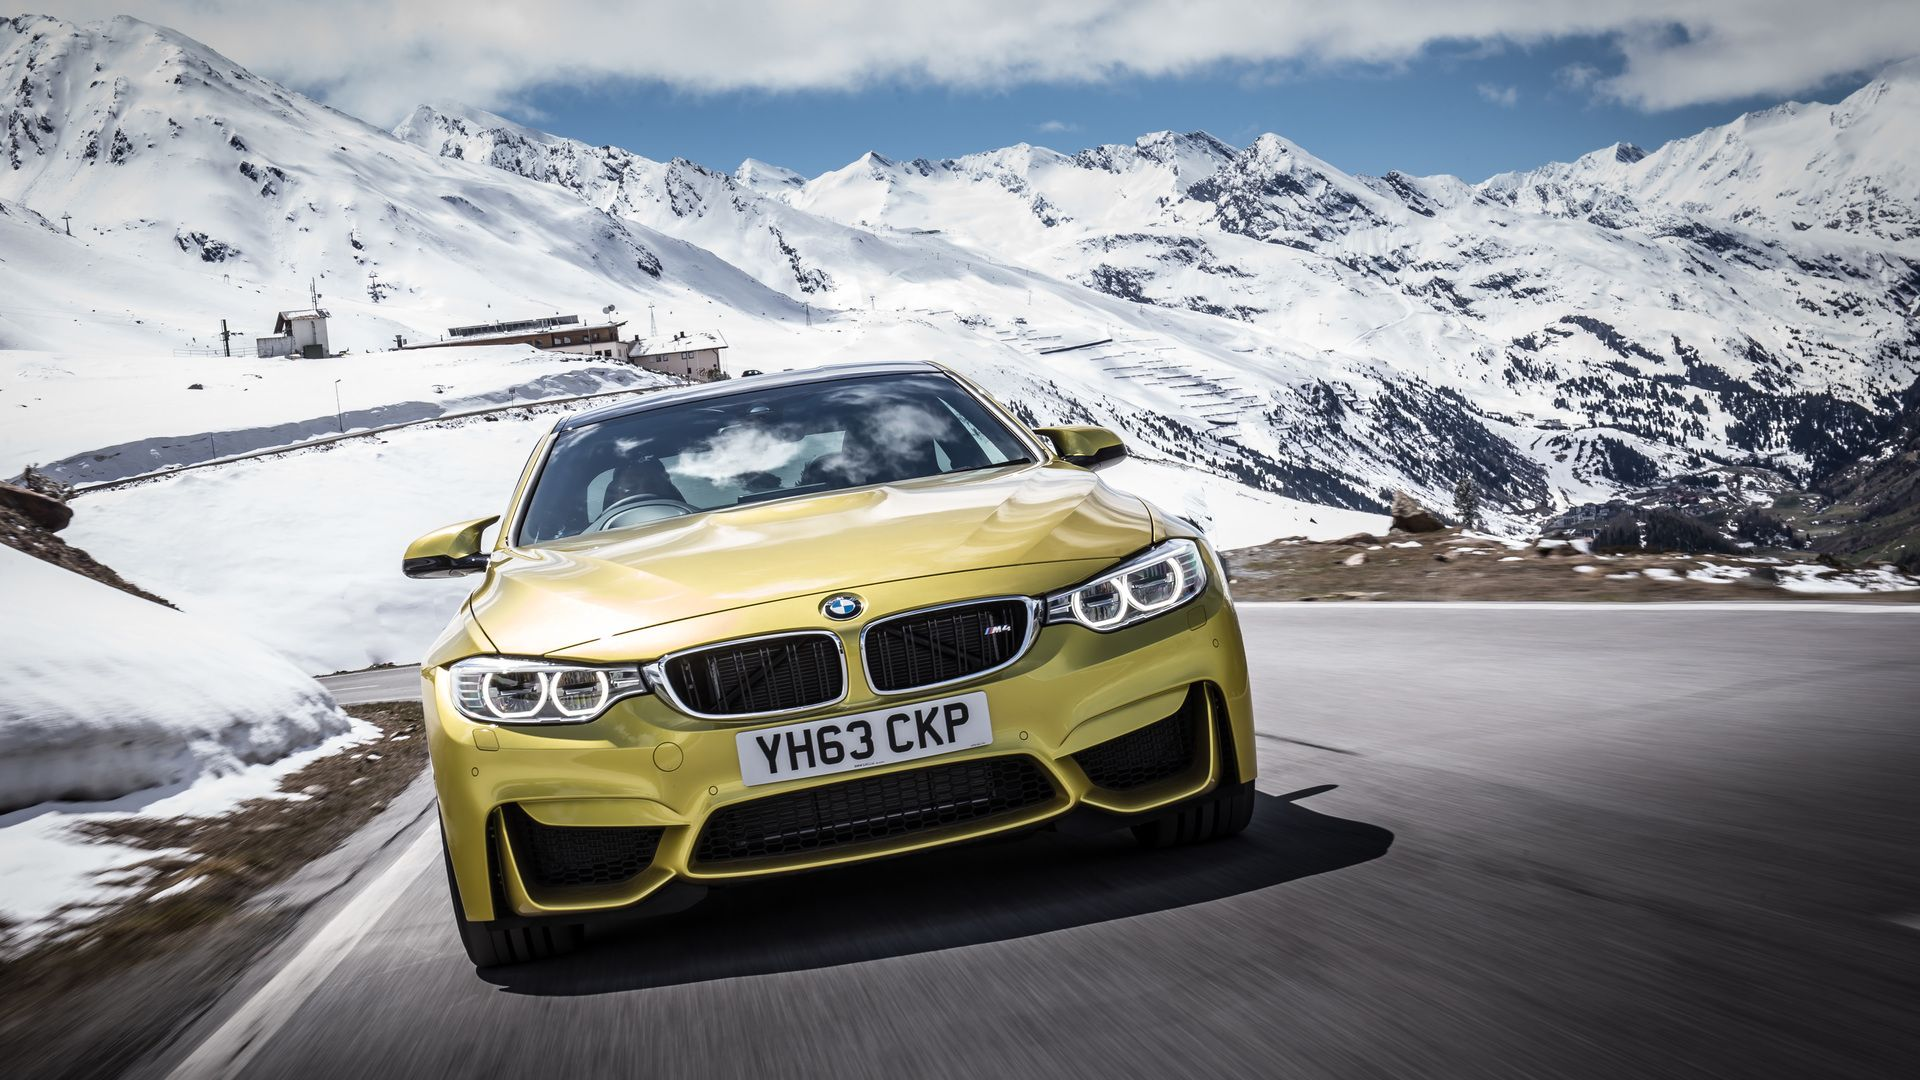 Bmw M4 free picture